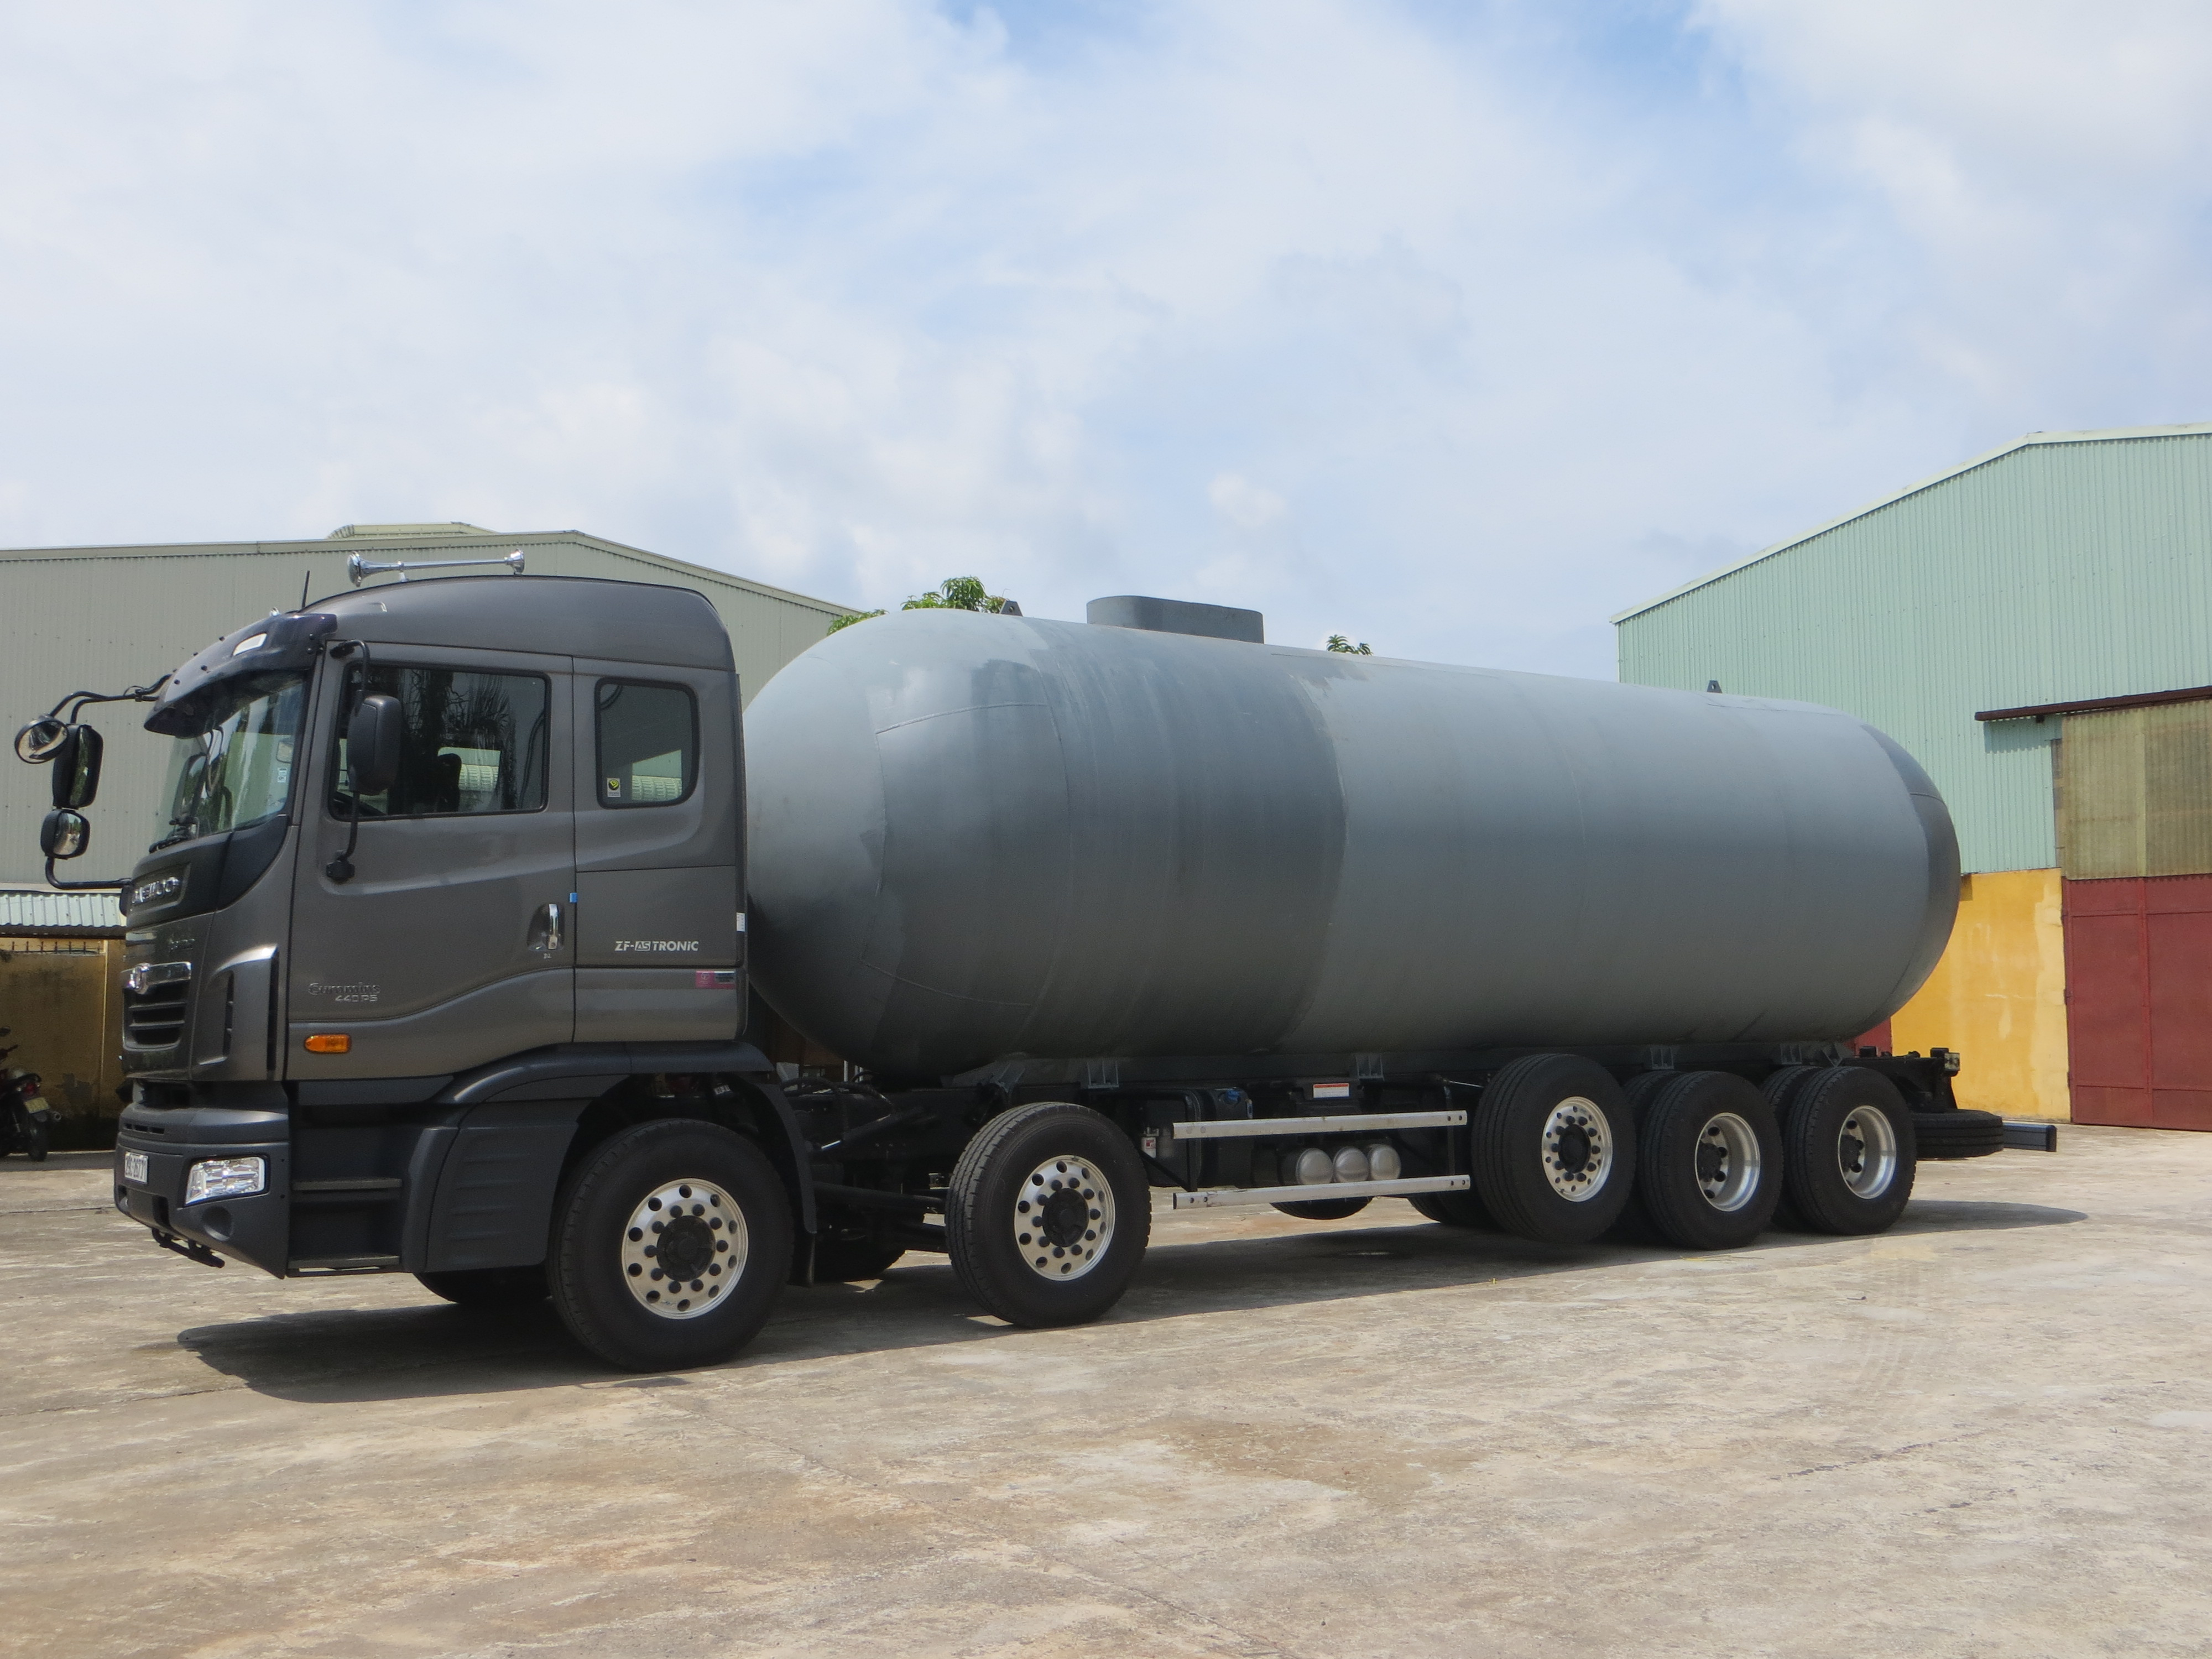 LPG storage tanks and transport, NH3